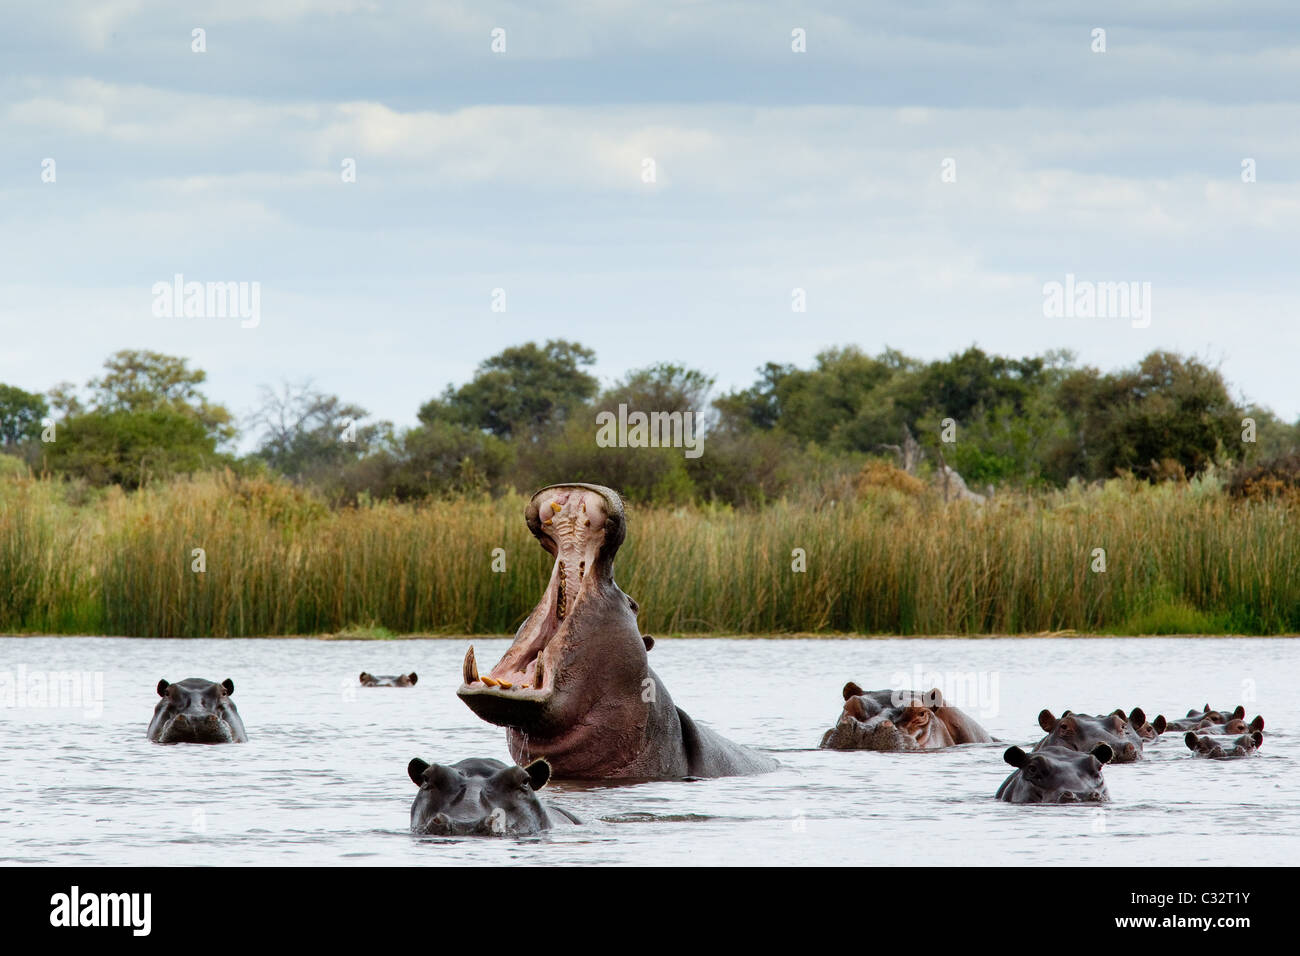 Belligerent hippo in river - Stock Image